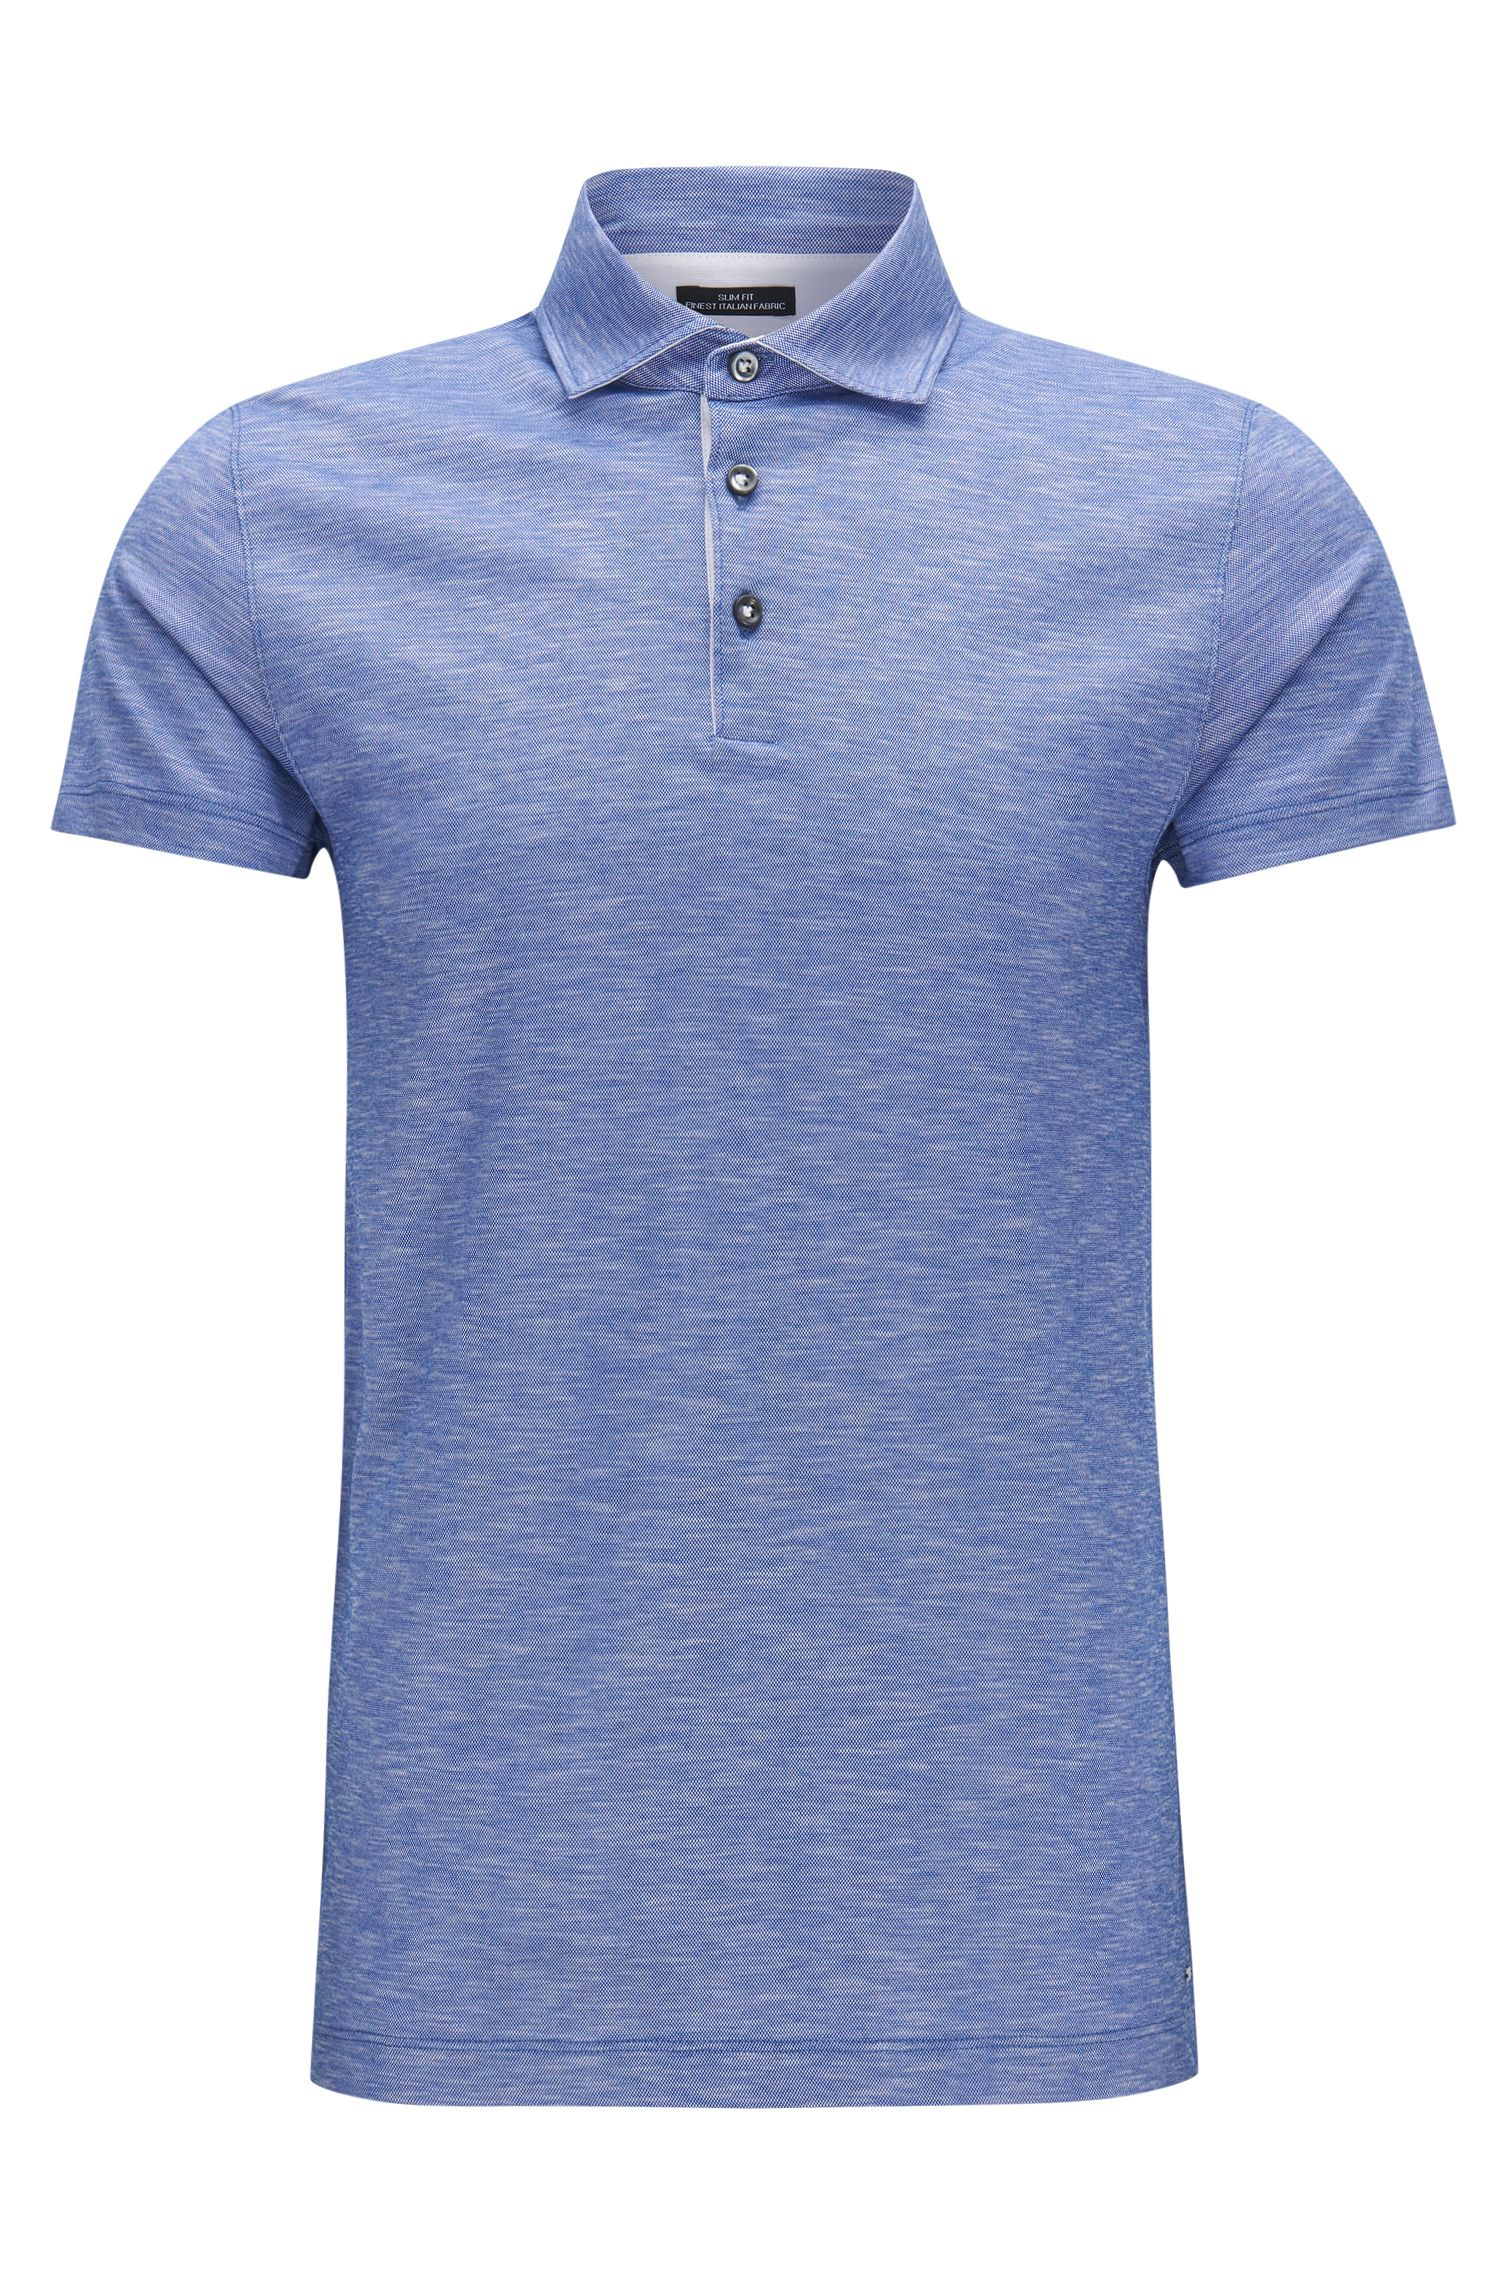 'T-Pryde' | Slim Fit, Italian Cotton Polo Shirt